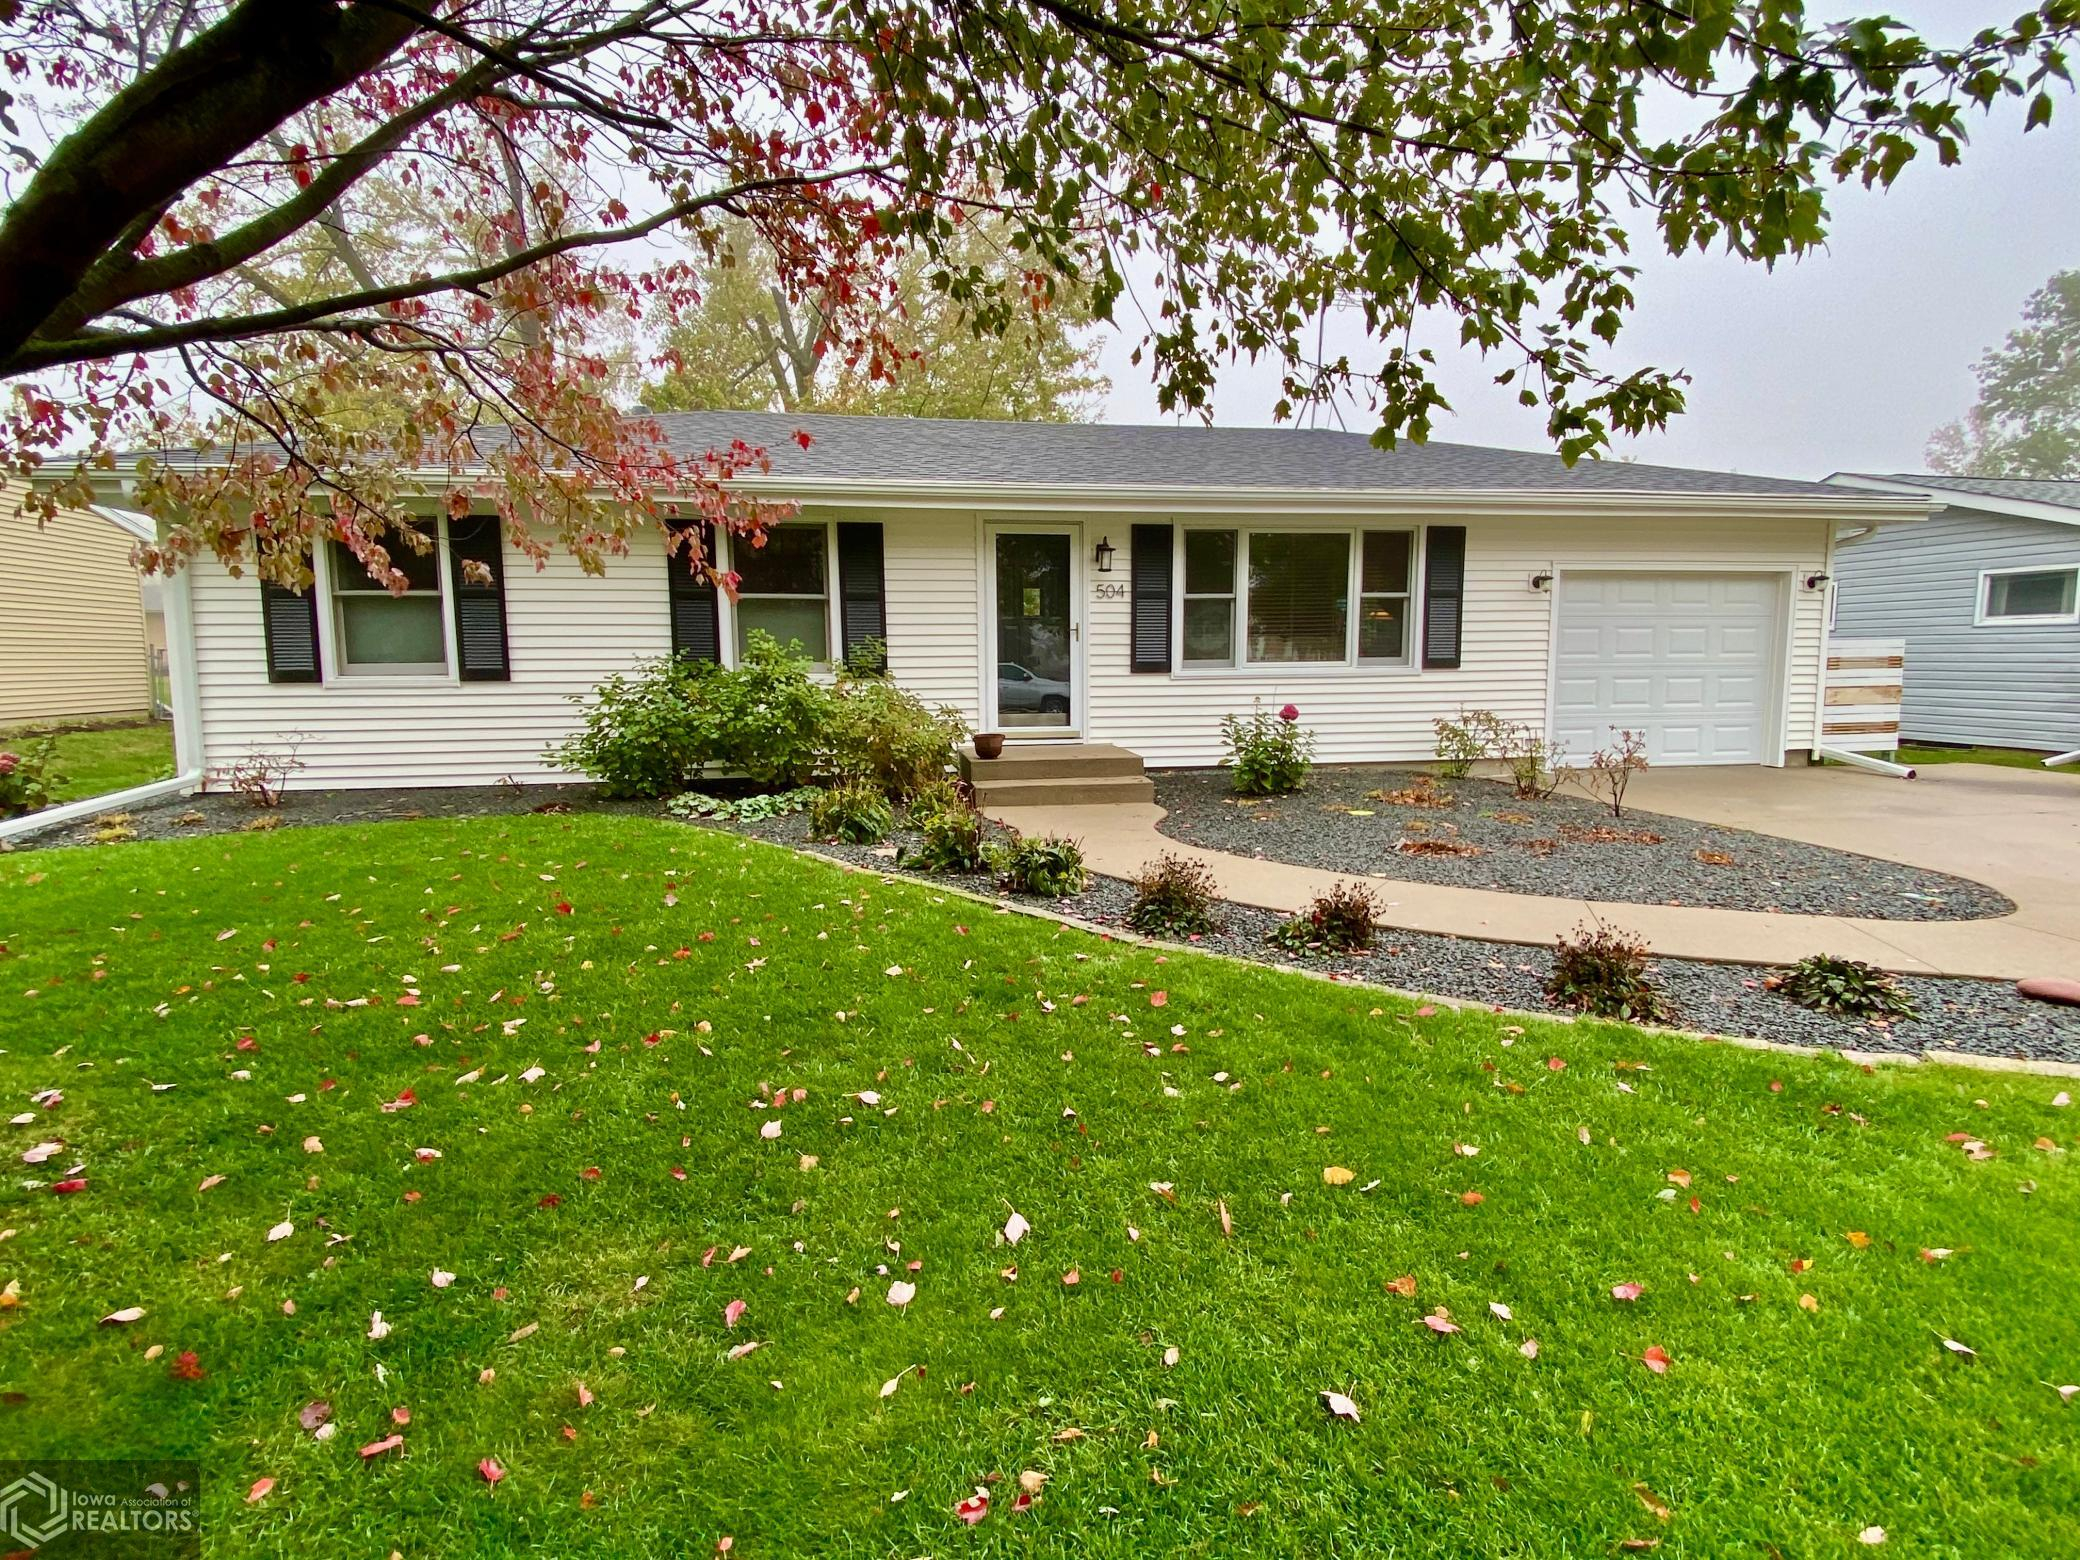 504 13th, Grinnell, Iowa 50112-2630, 3 Bedrooms Bedrooms, ,1 BathroomBathrooms,Single Family,For Sale,13th,5677619